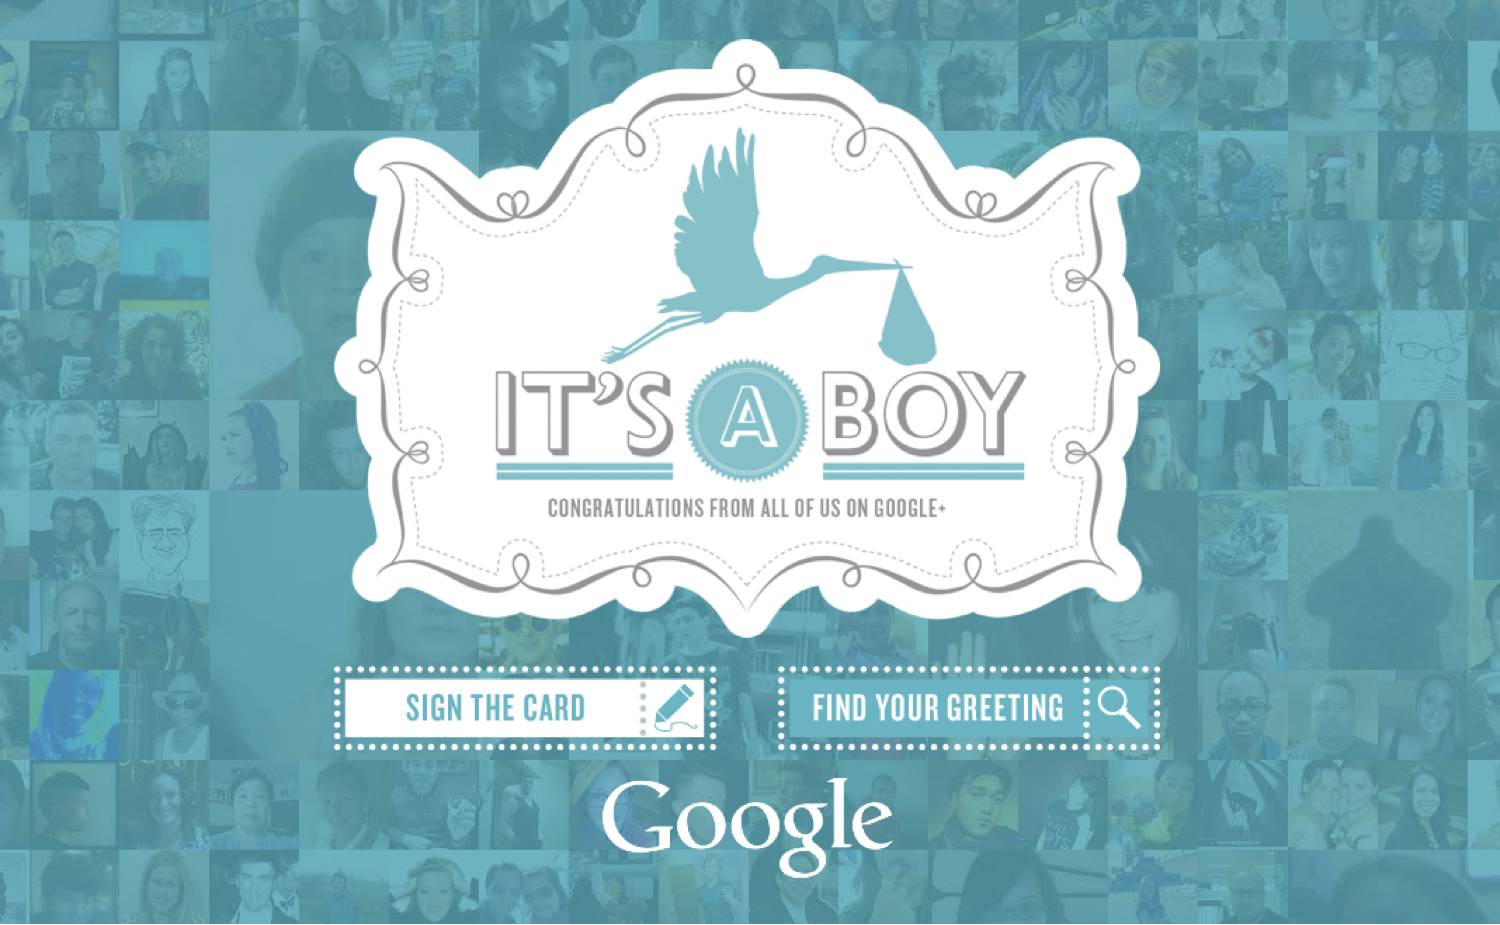 It's a boy! Já assinou o cartão virtual da Google?